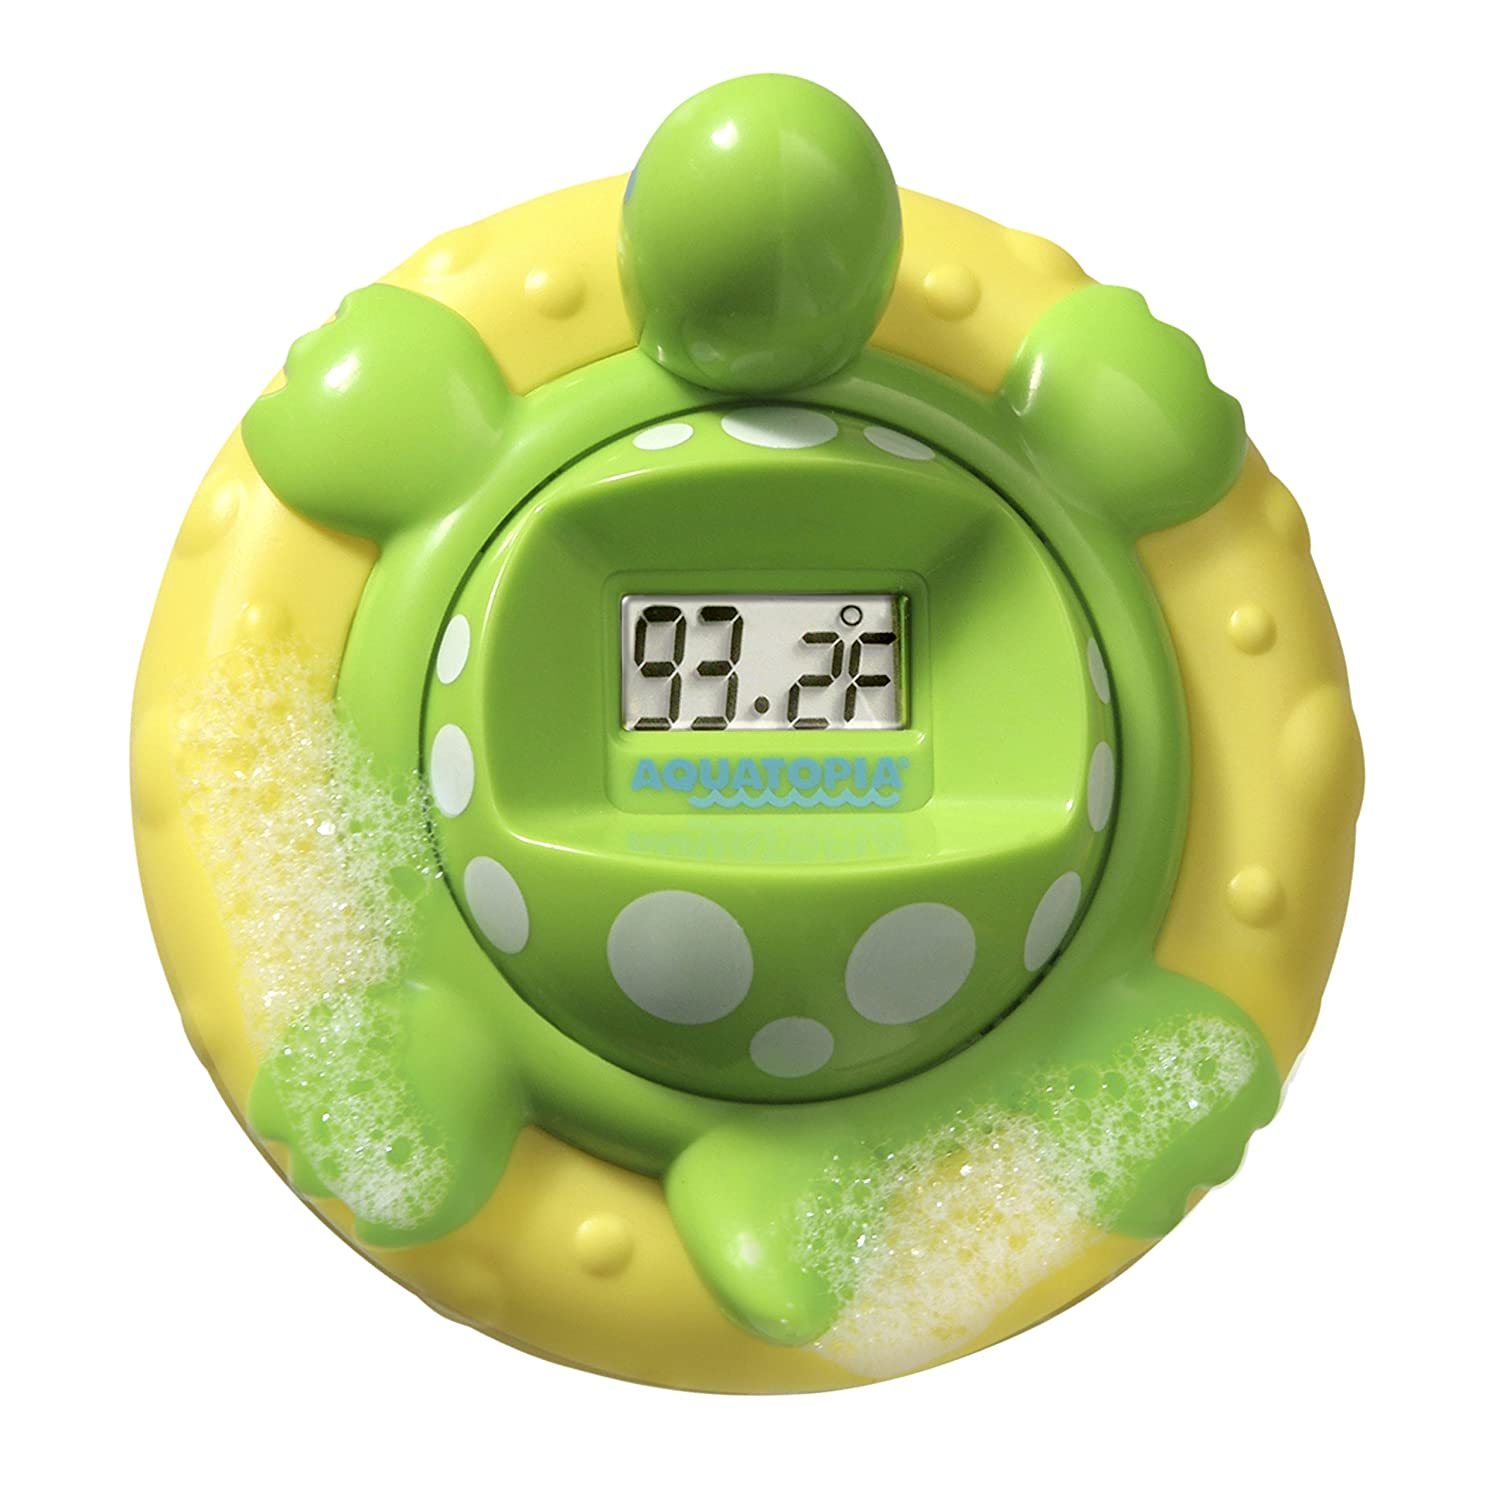 Aquatopia 1014 Deluxe Safety Bath Thermometer Alarm, Green